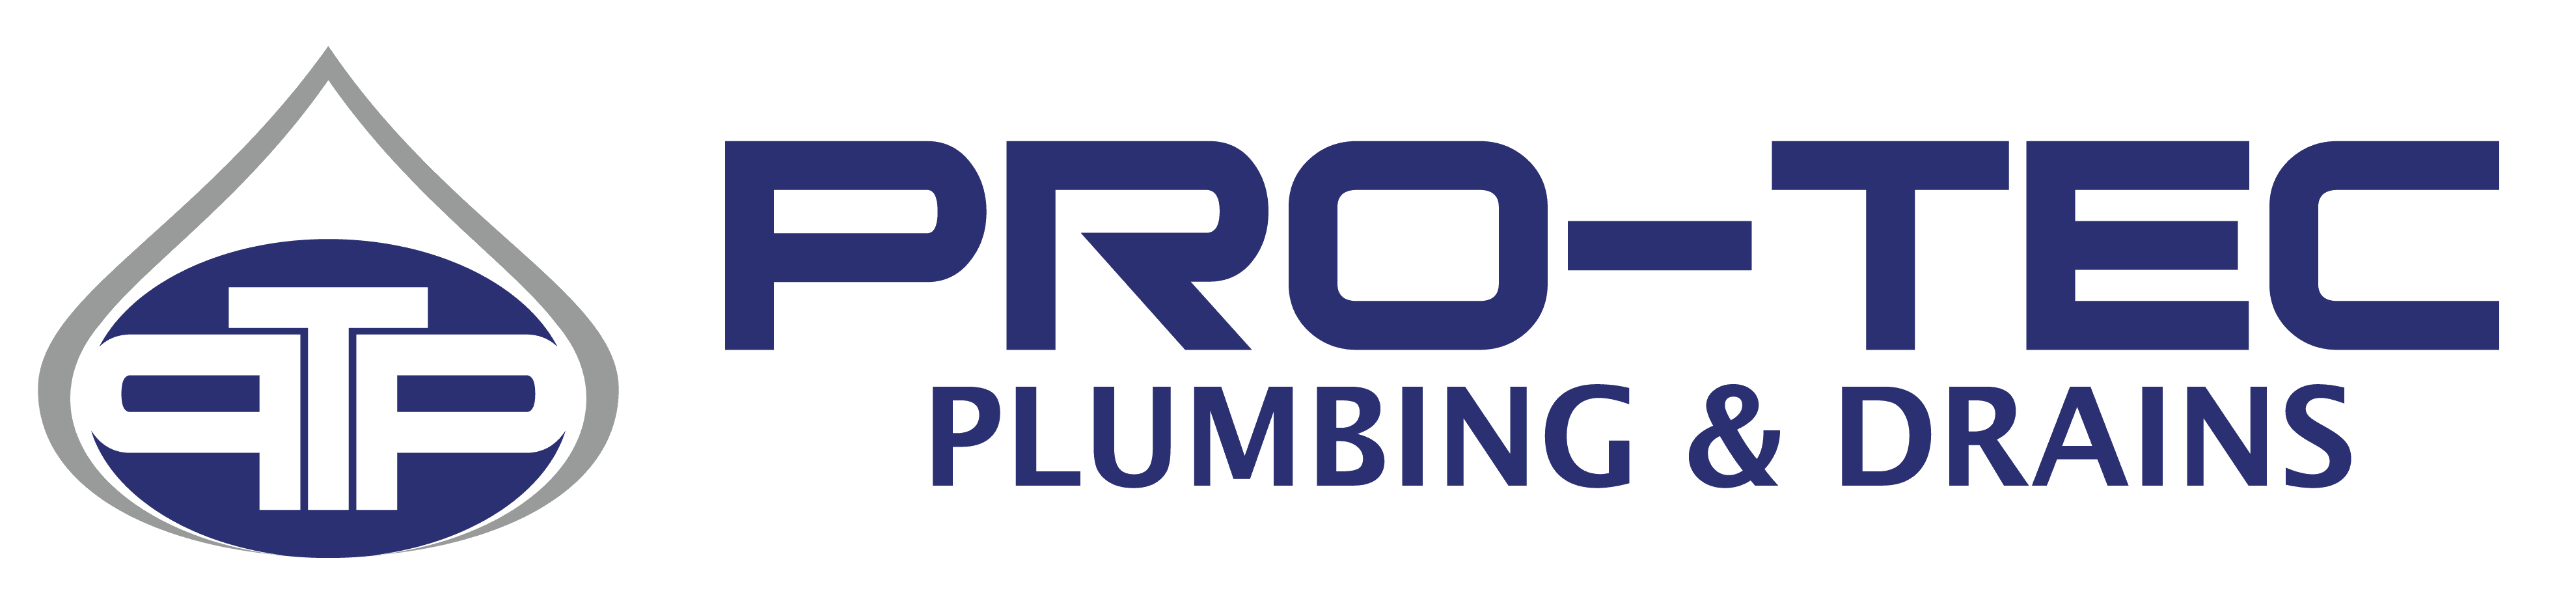 Pro-Tec Plumbing & Drains logo on transparent background for website